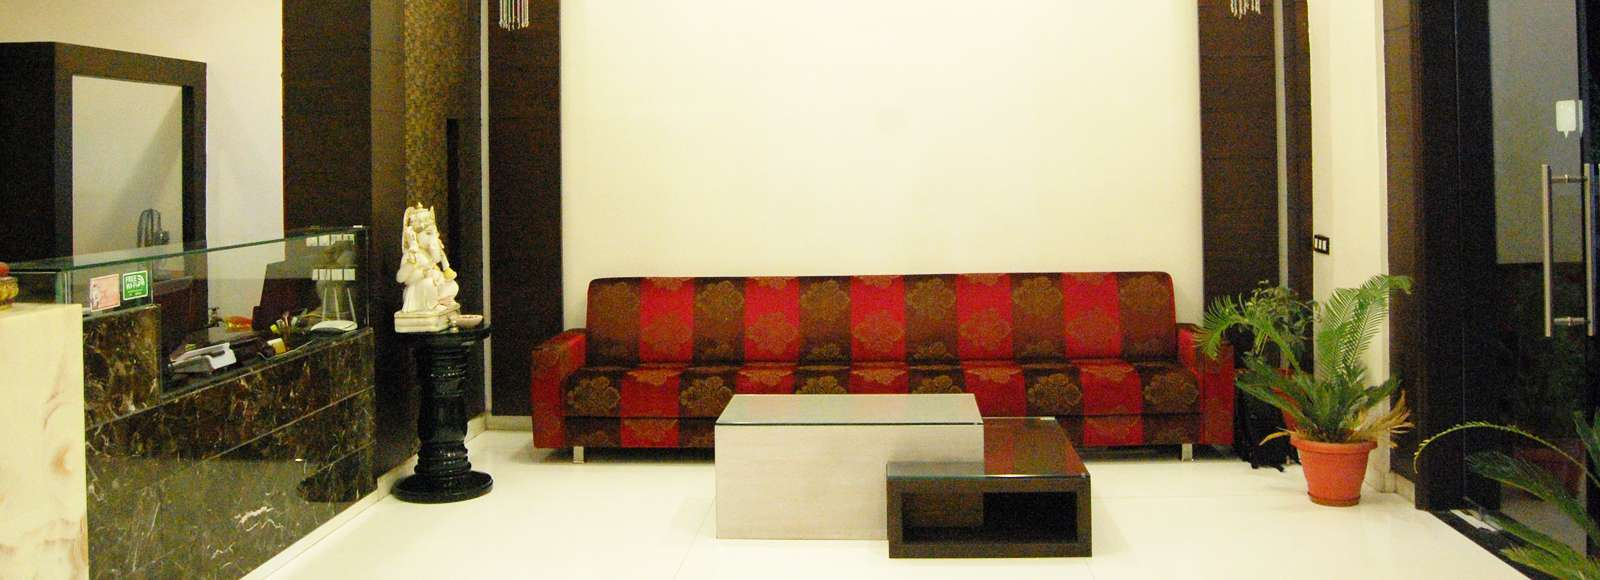 Book_Hotels_in_Udaipur-compressed